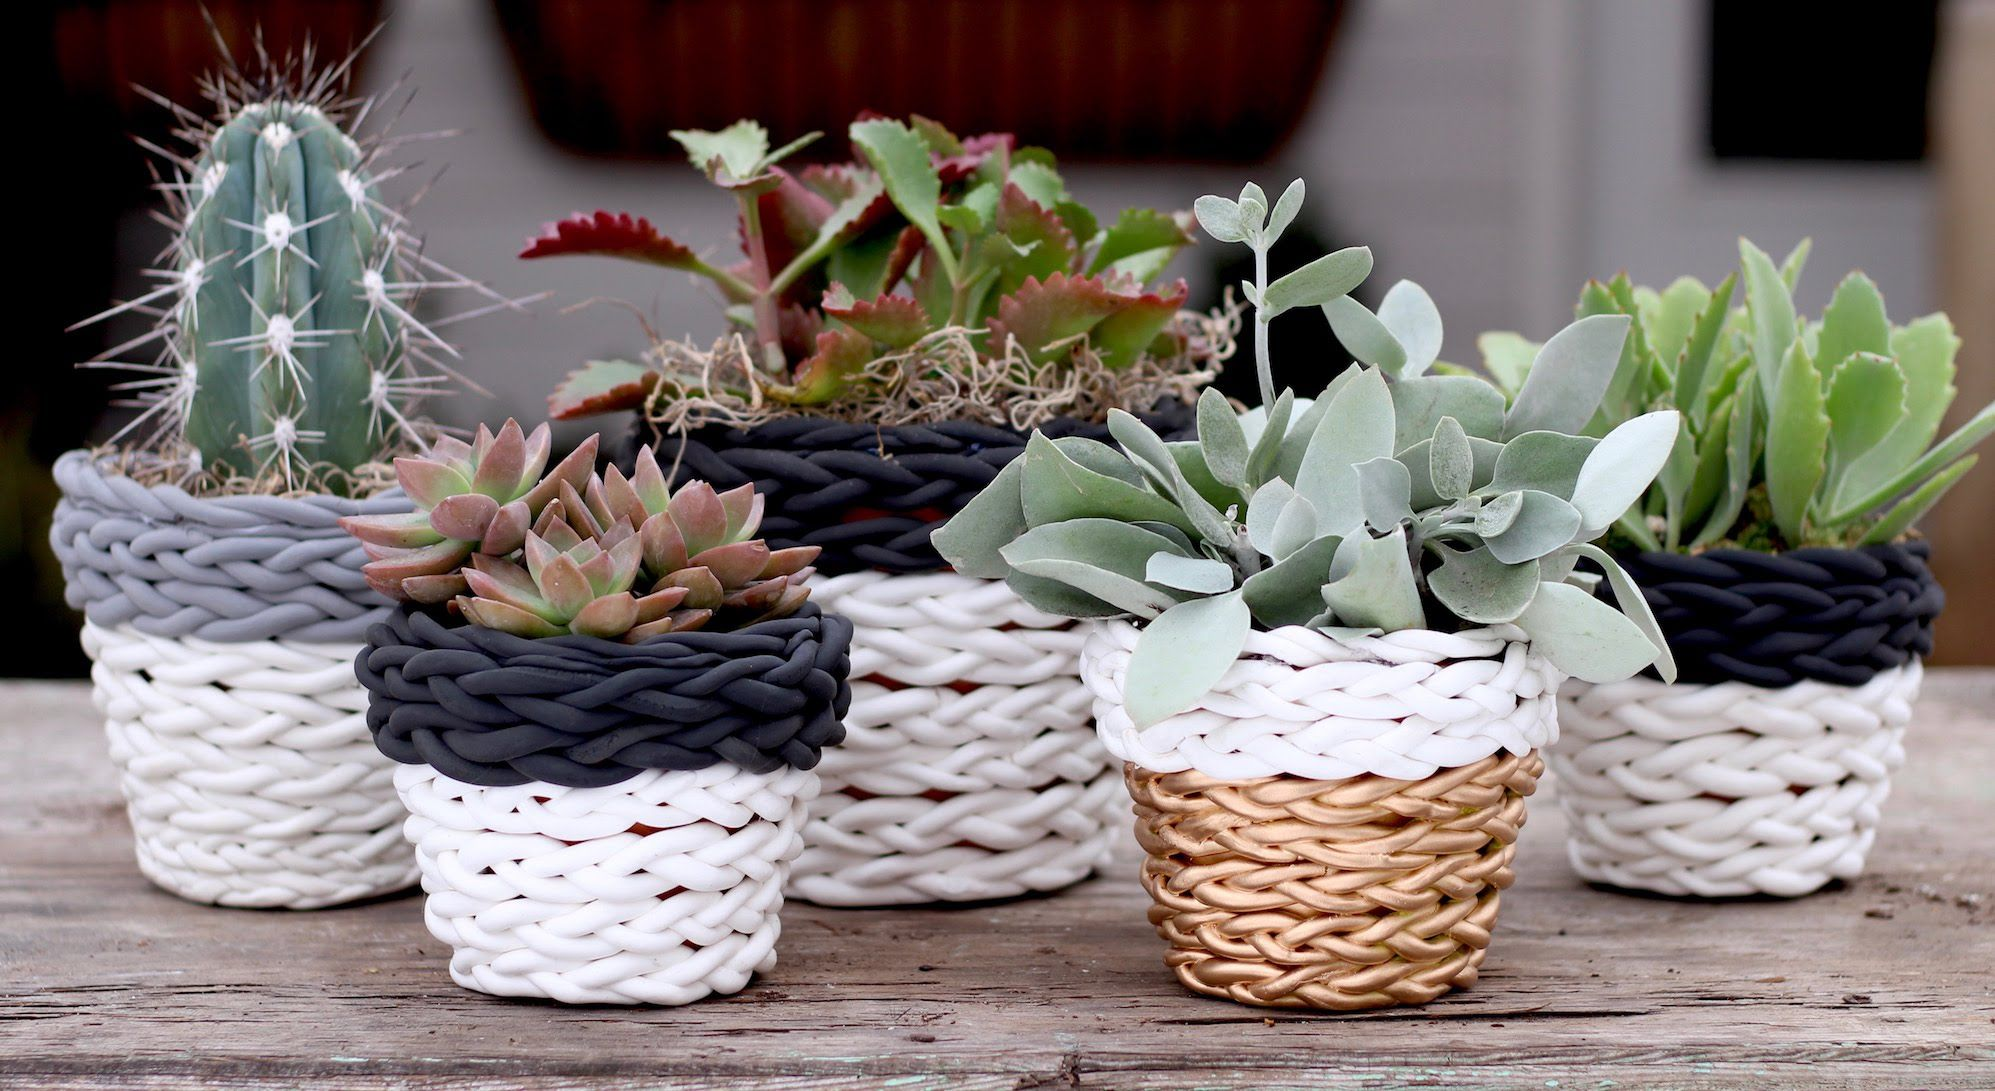 Don't these ceramic pots look awesome with the braided air